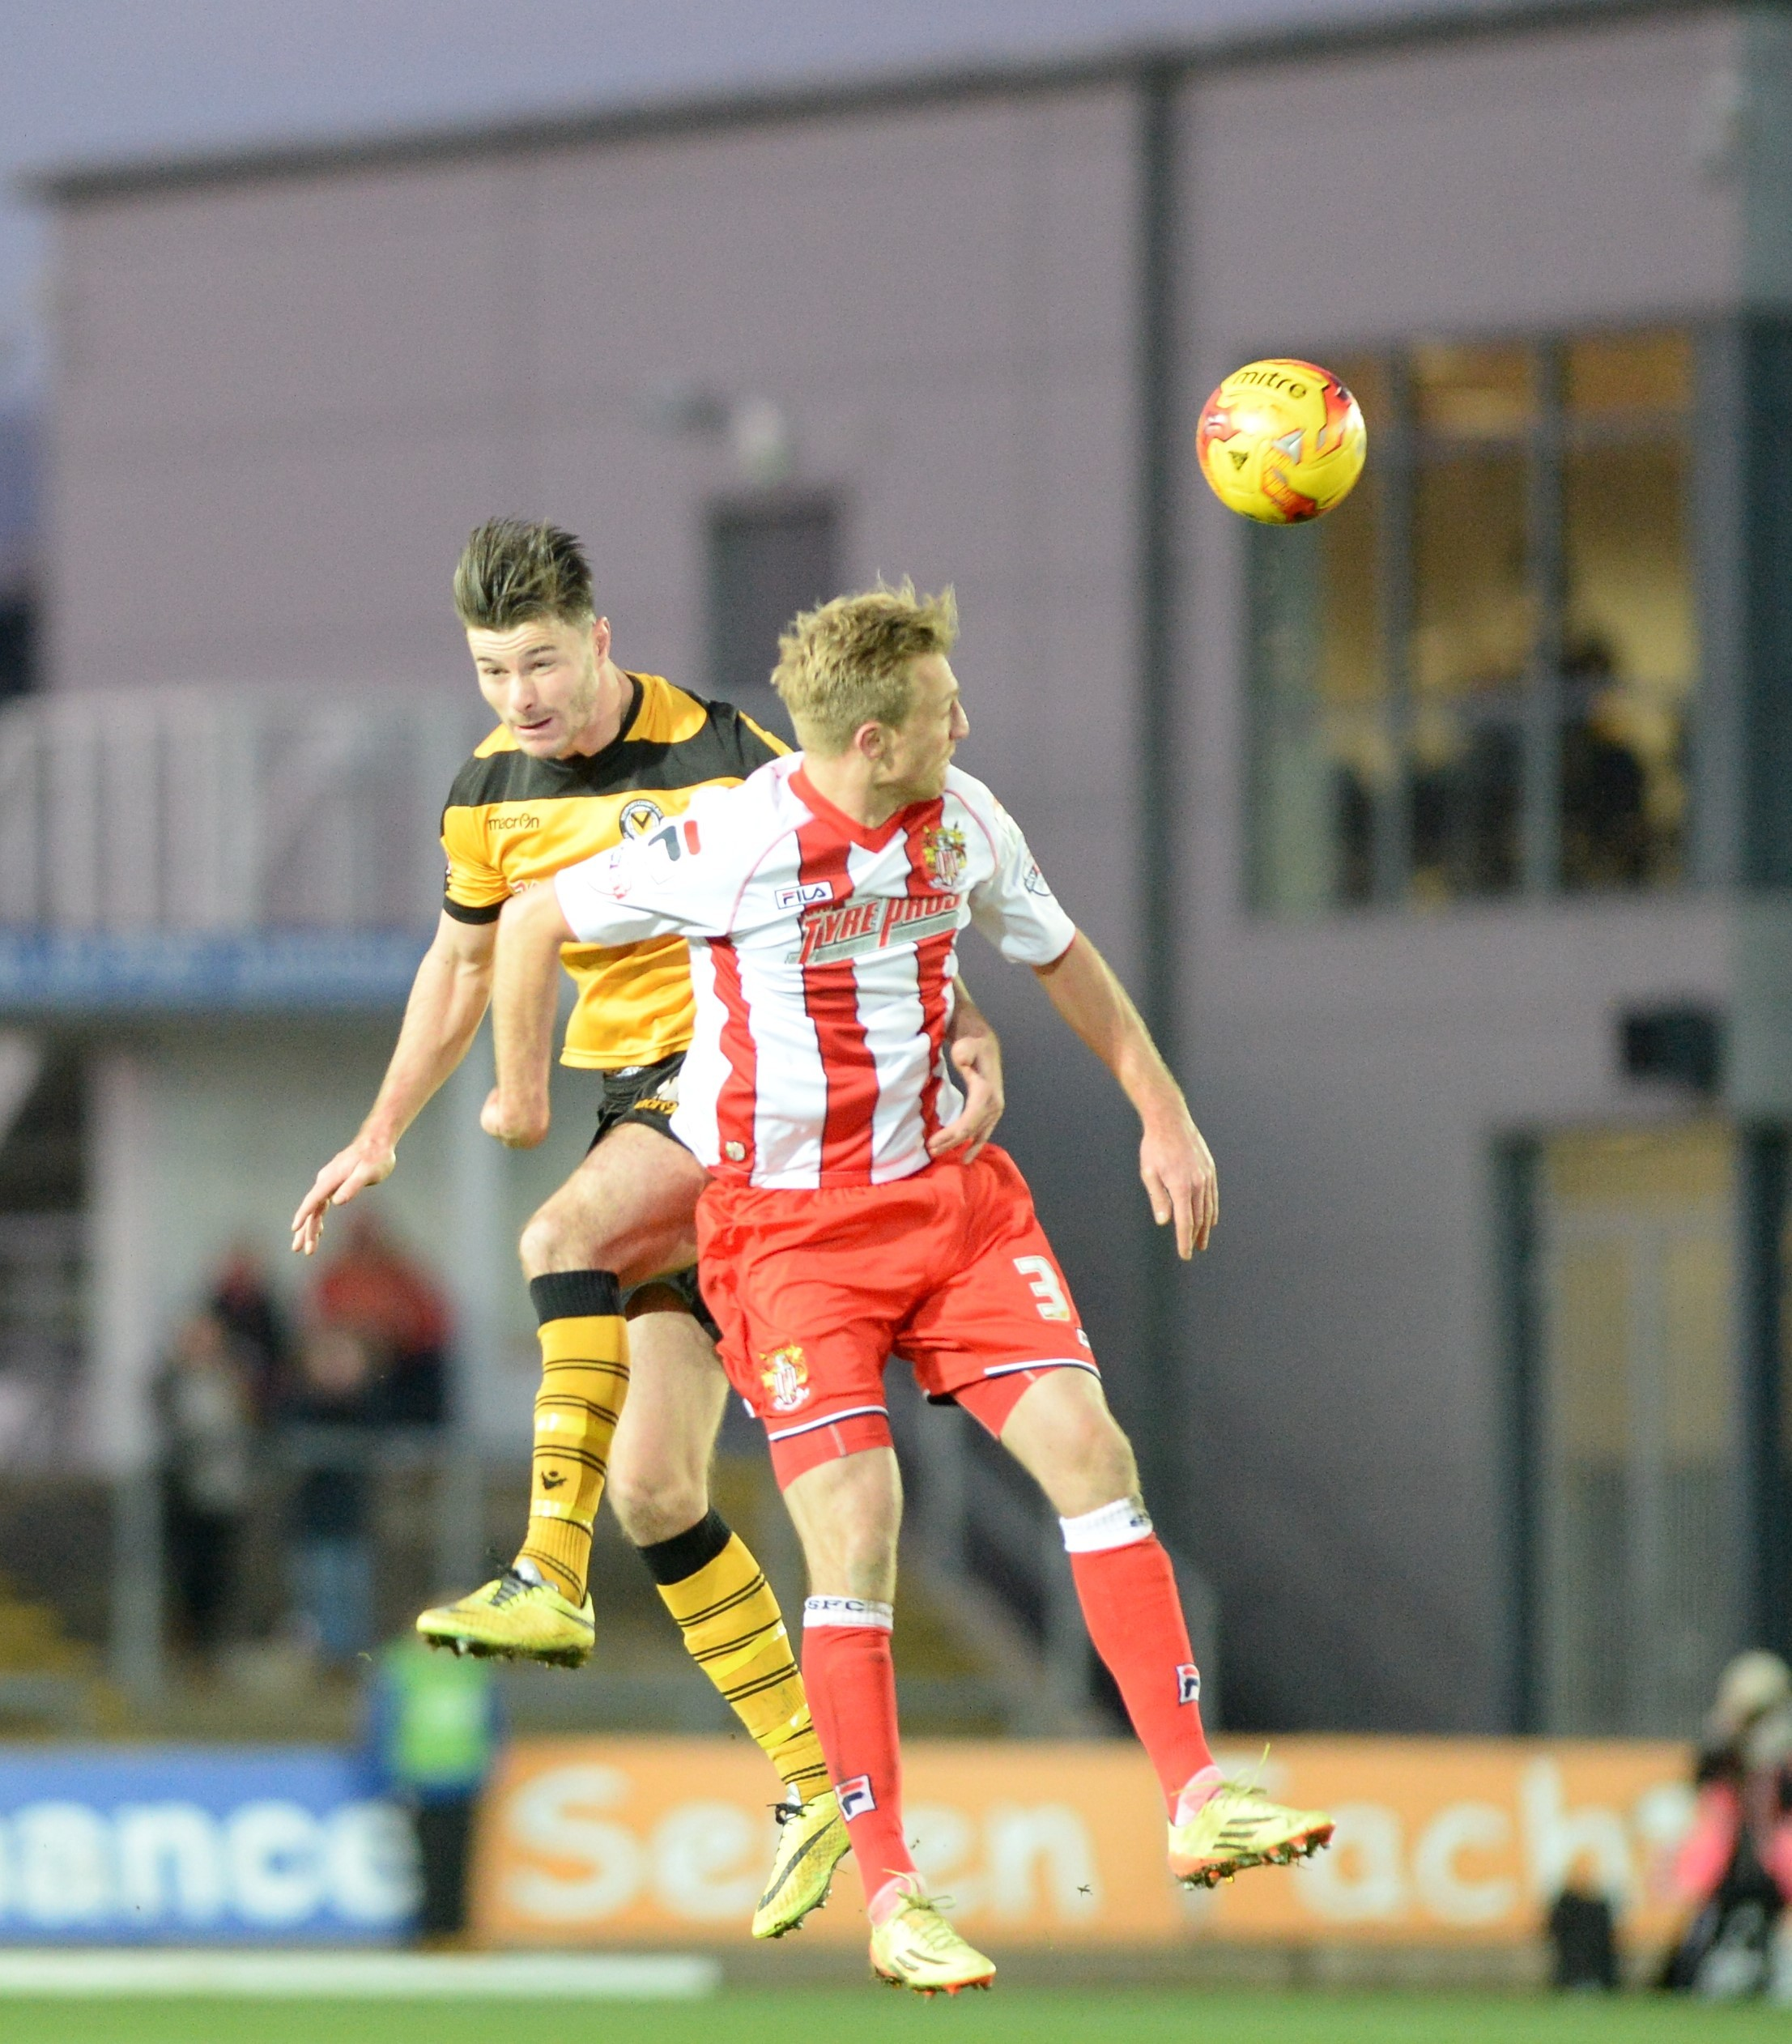 INJURY SCARE: Andrew Hughes wins a header against Stevenage on Saturday